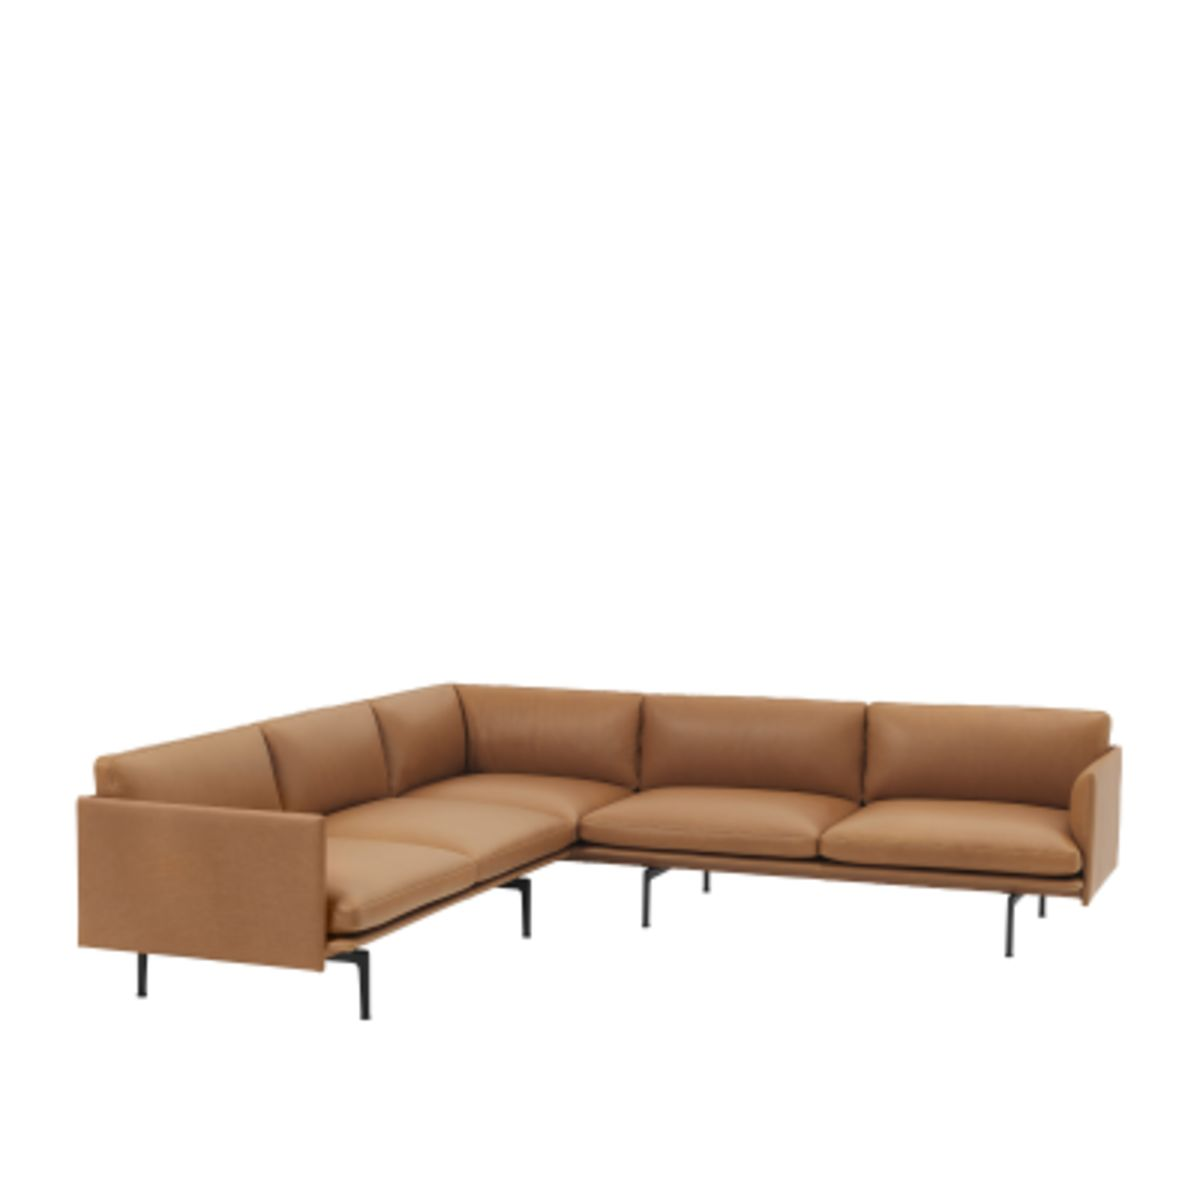 Outstanding Shop Outline Sofa 2 Seater Cjindustries Chair Design For Home Cjindustriesco